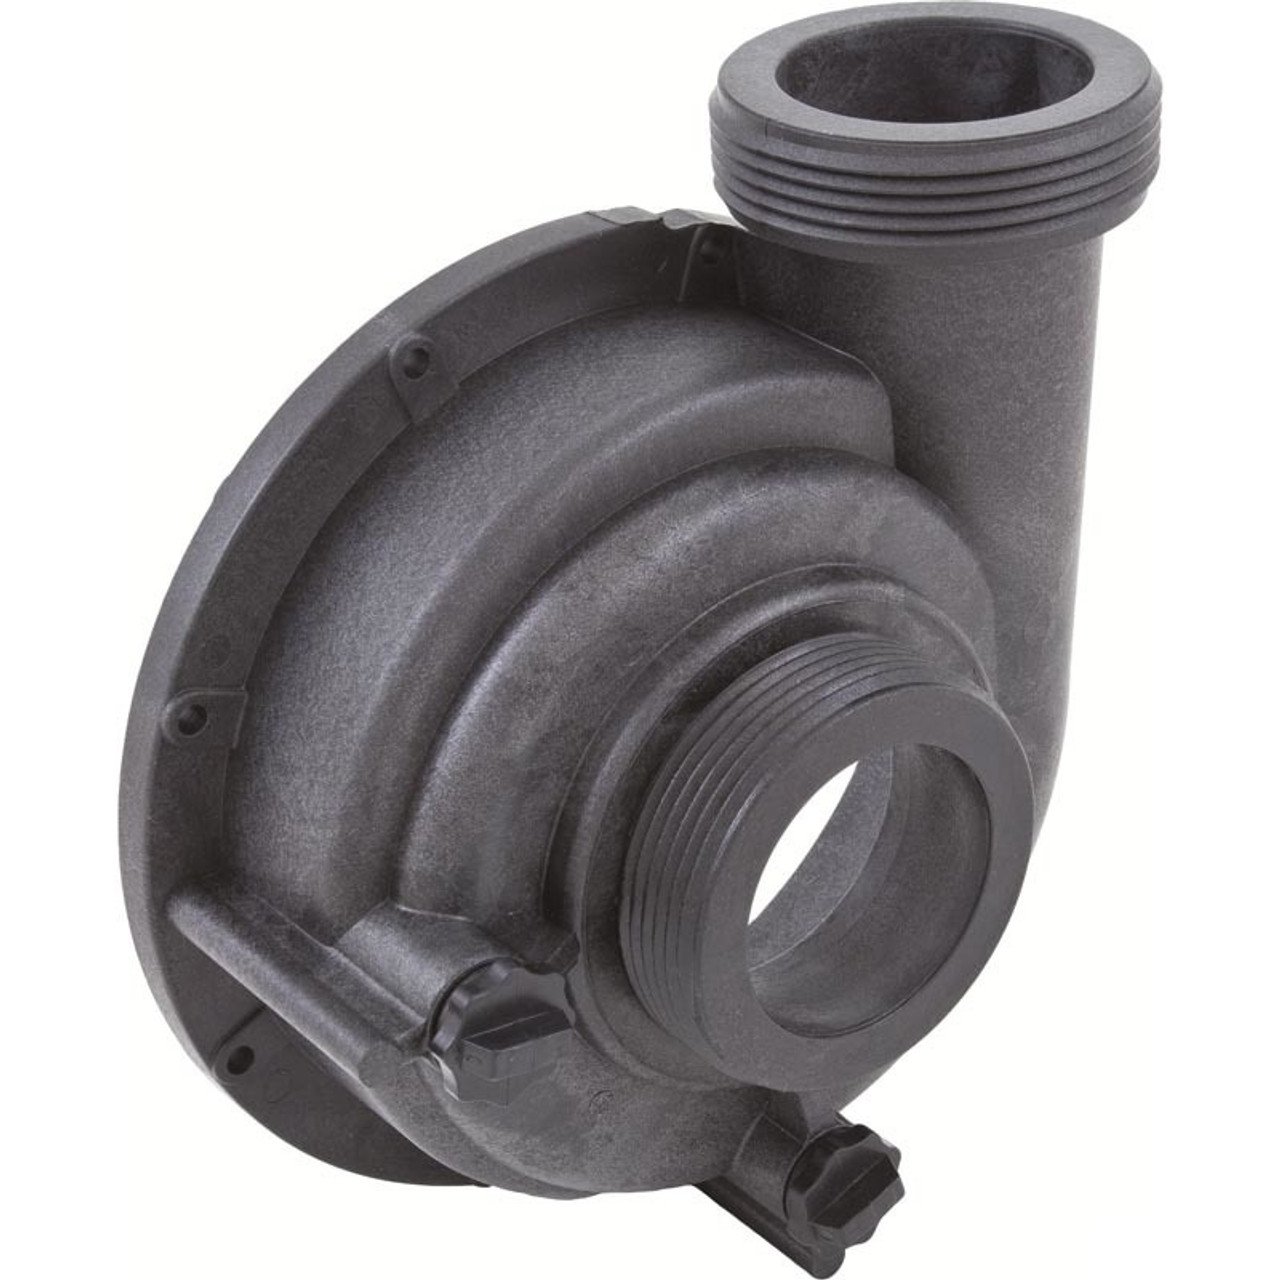 Jacuzzi Pool Pump Union 6500 546 6500 545 Housing Front Volute With O Ring